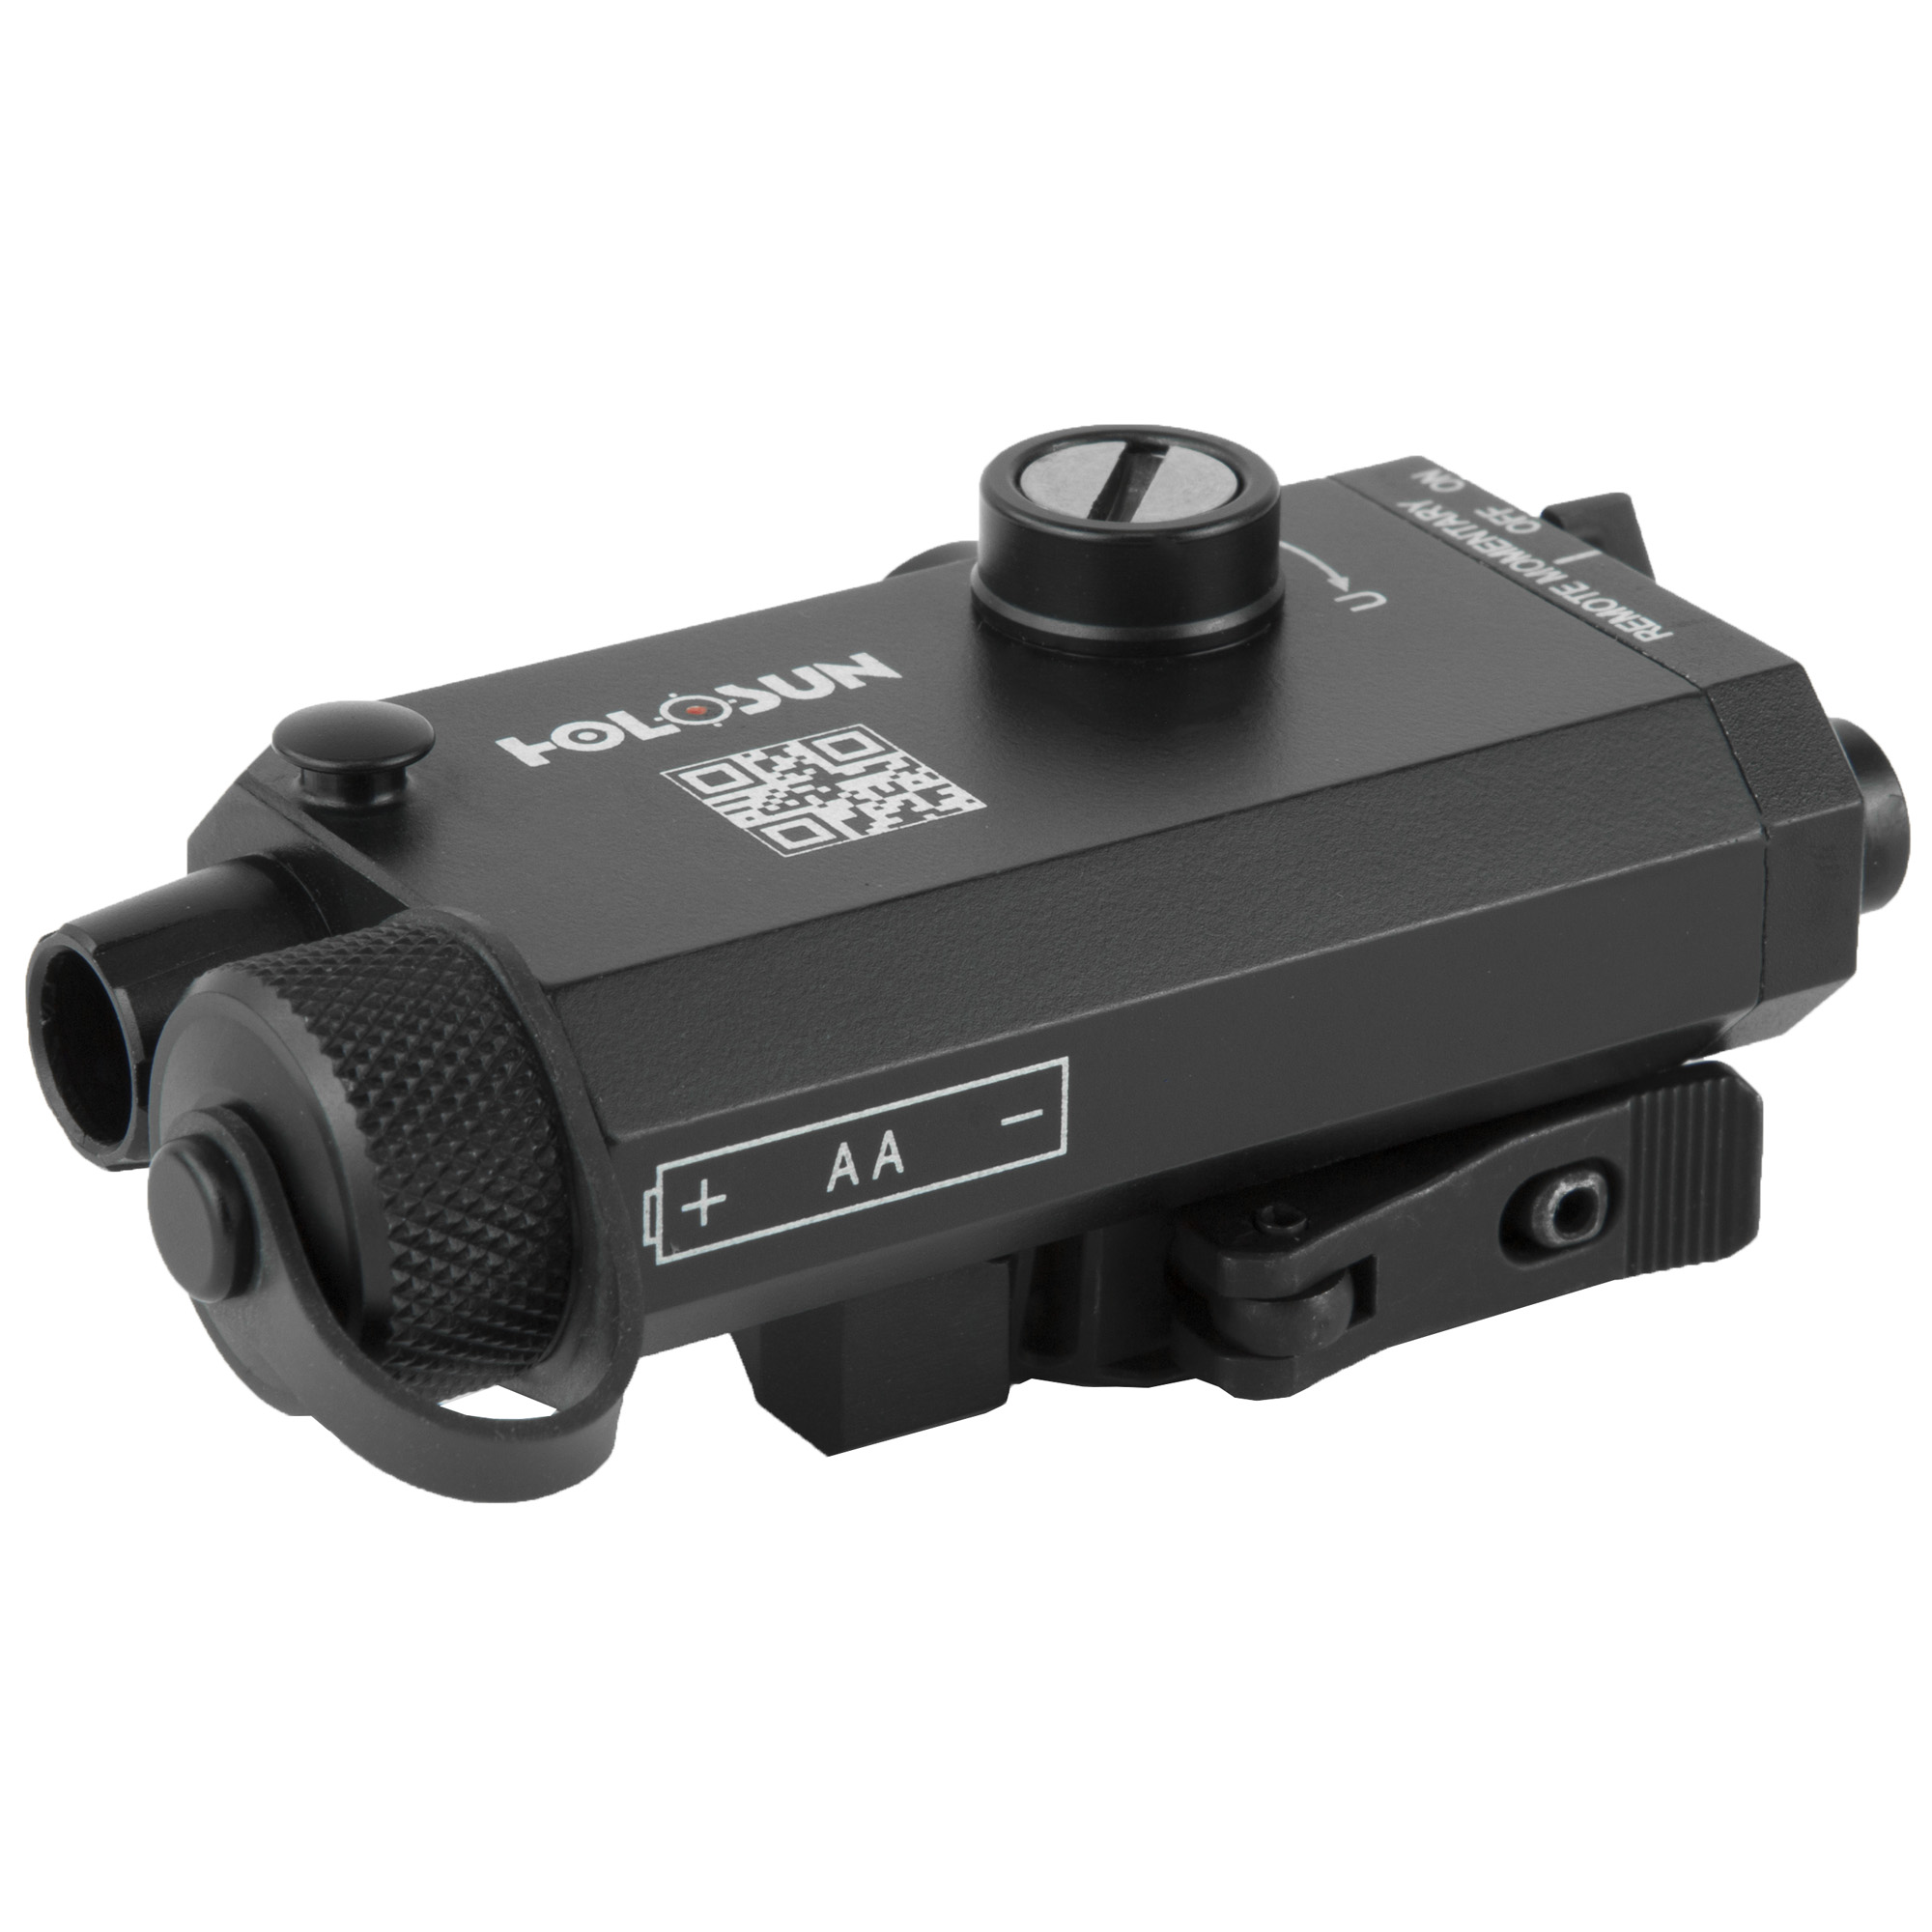 LS117R is a compact and lightweight single-beam laser sight. Fully adjustable windage and elevation allows for greater accuracy to make that perfect shot in adverse lighting conditions.